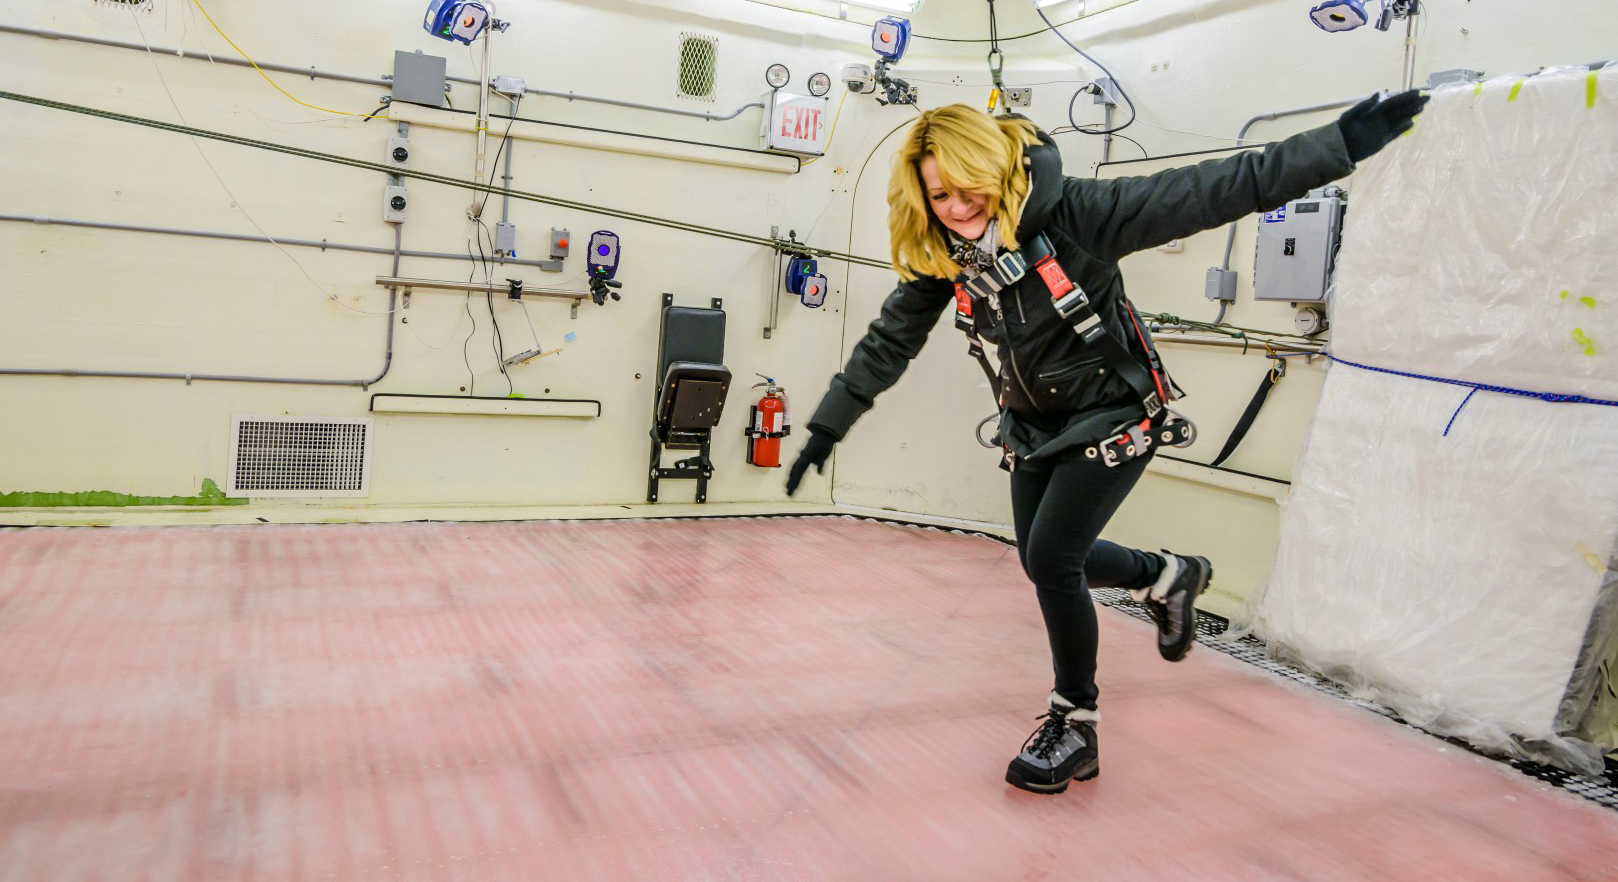 Boot testers walked on level ice, then on an icy surface with an incline to test the performance of winter boots. Toronto Rehabilitation Institute